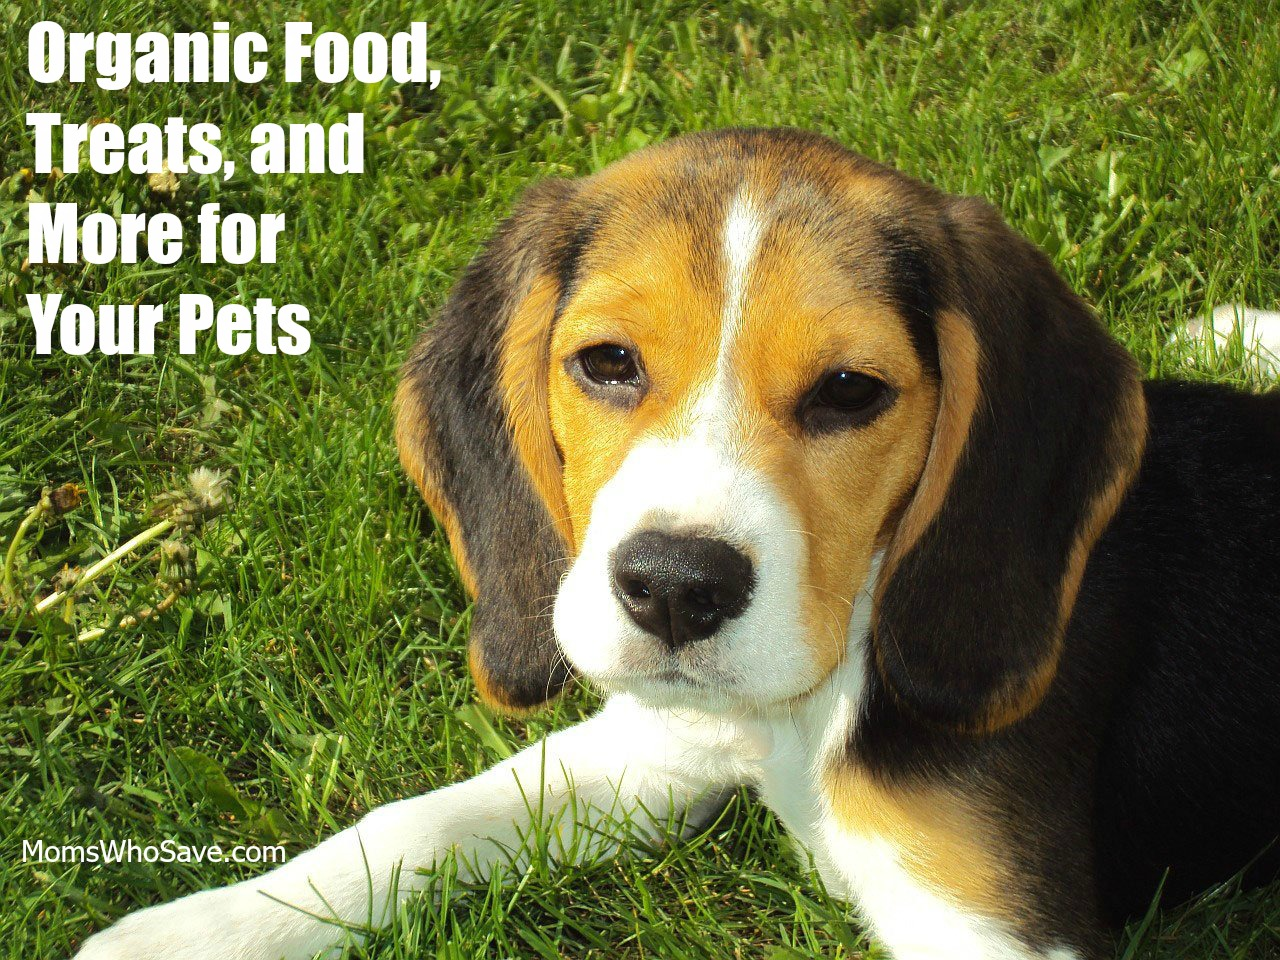 Organic Food, Treats, and More for Your Pets